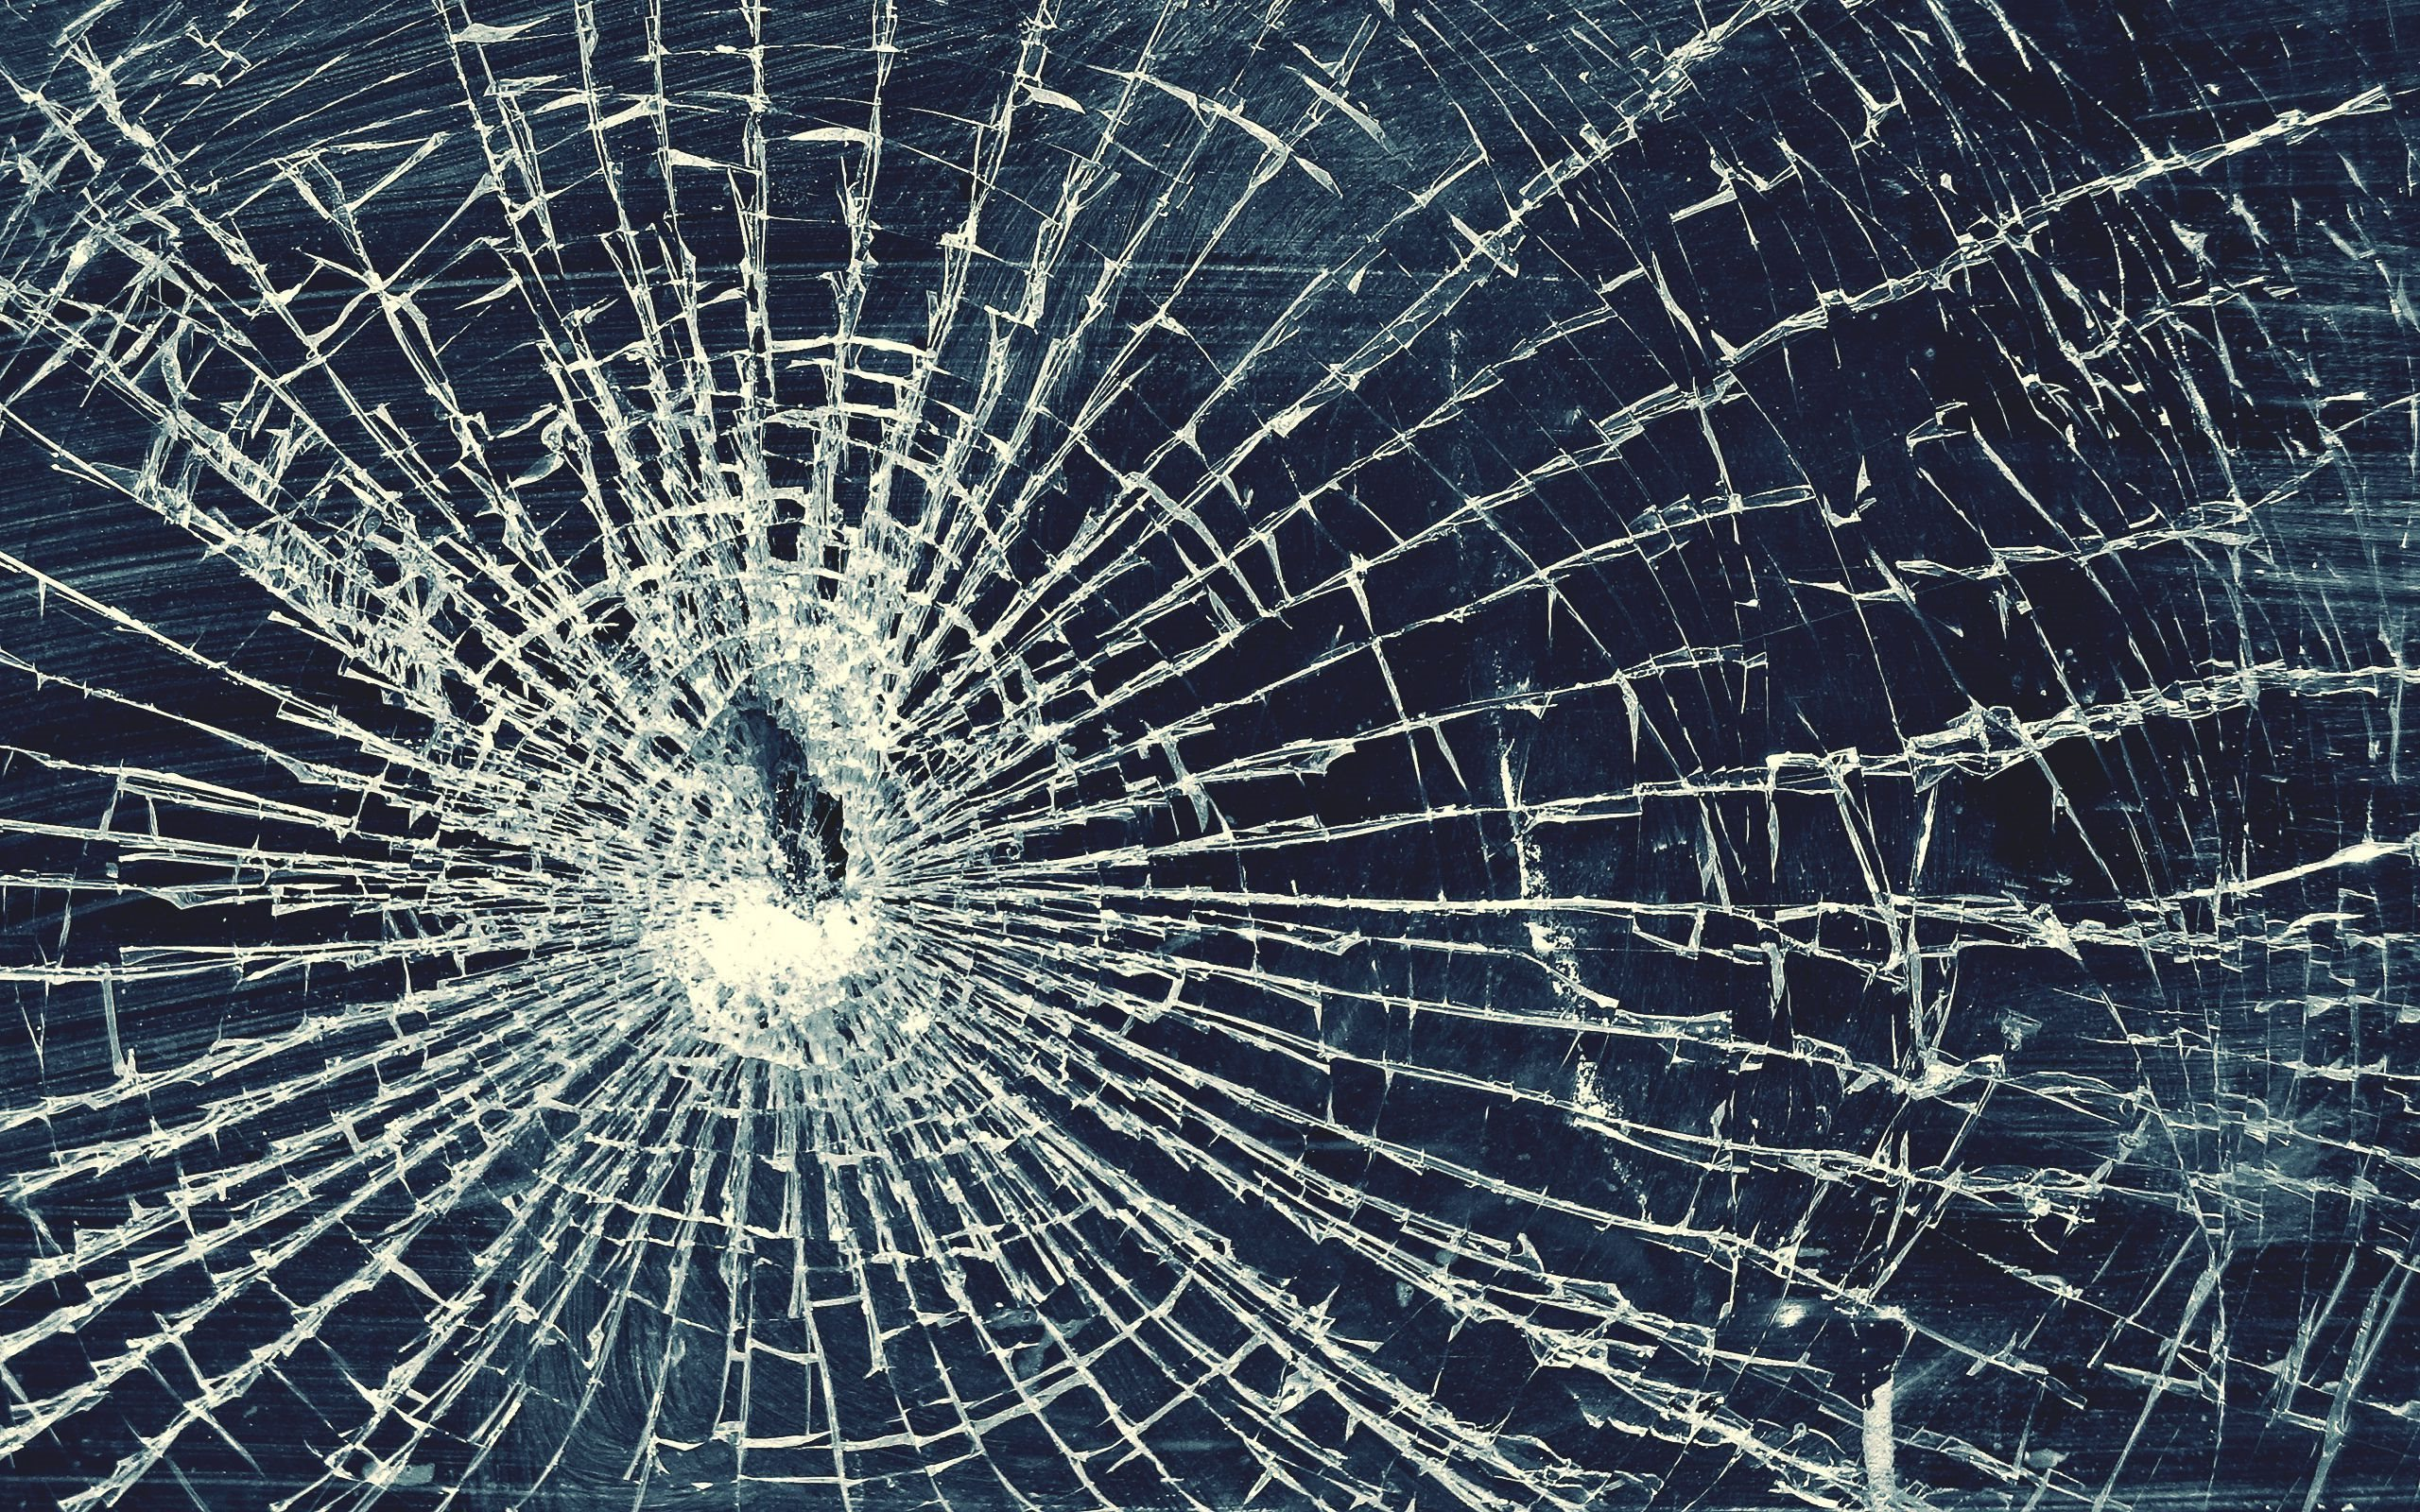 broken-glass-bullet-hole-cracked-glass.jpg